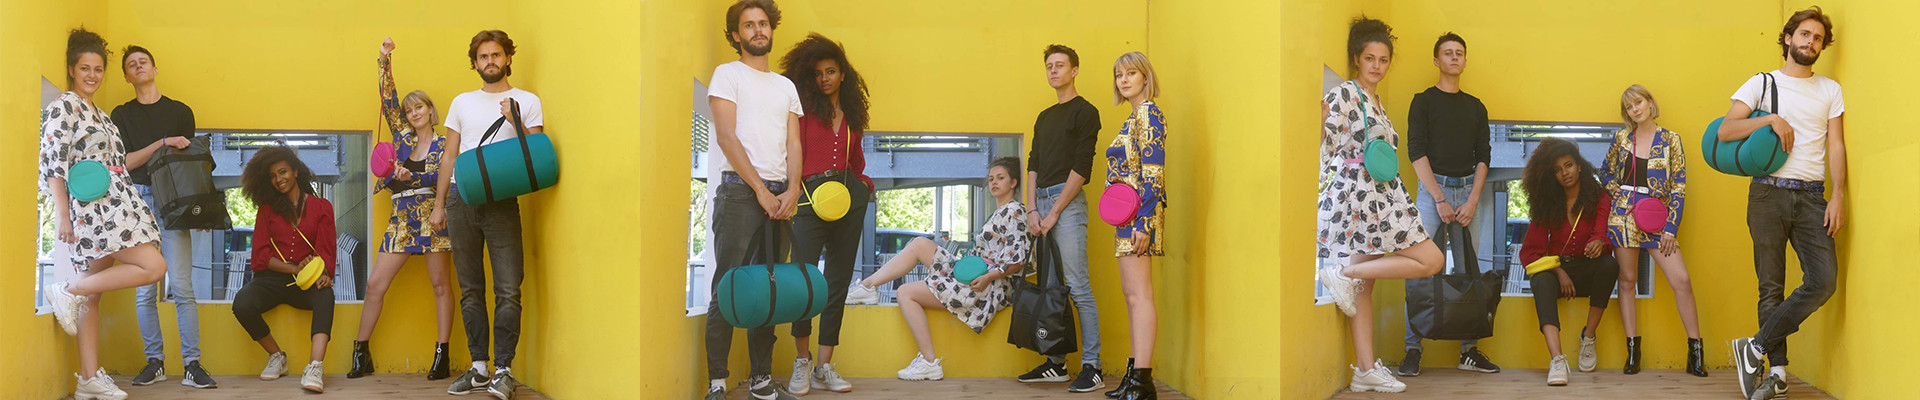 Colorful and lightweight Handbags in neoprene-like foam